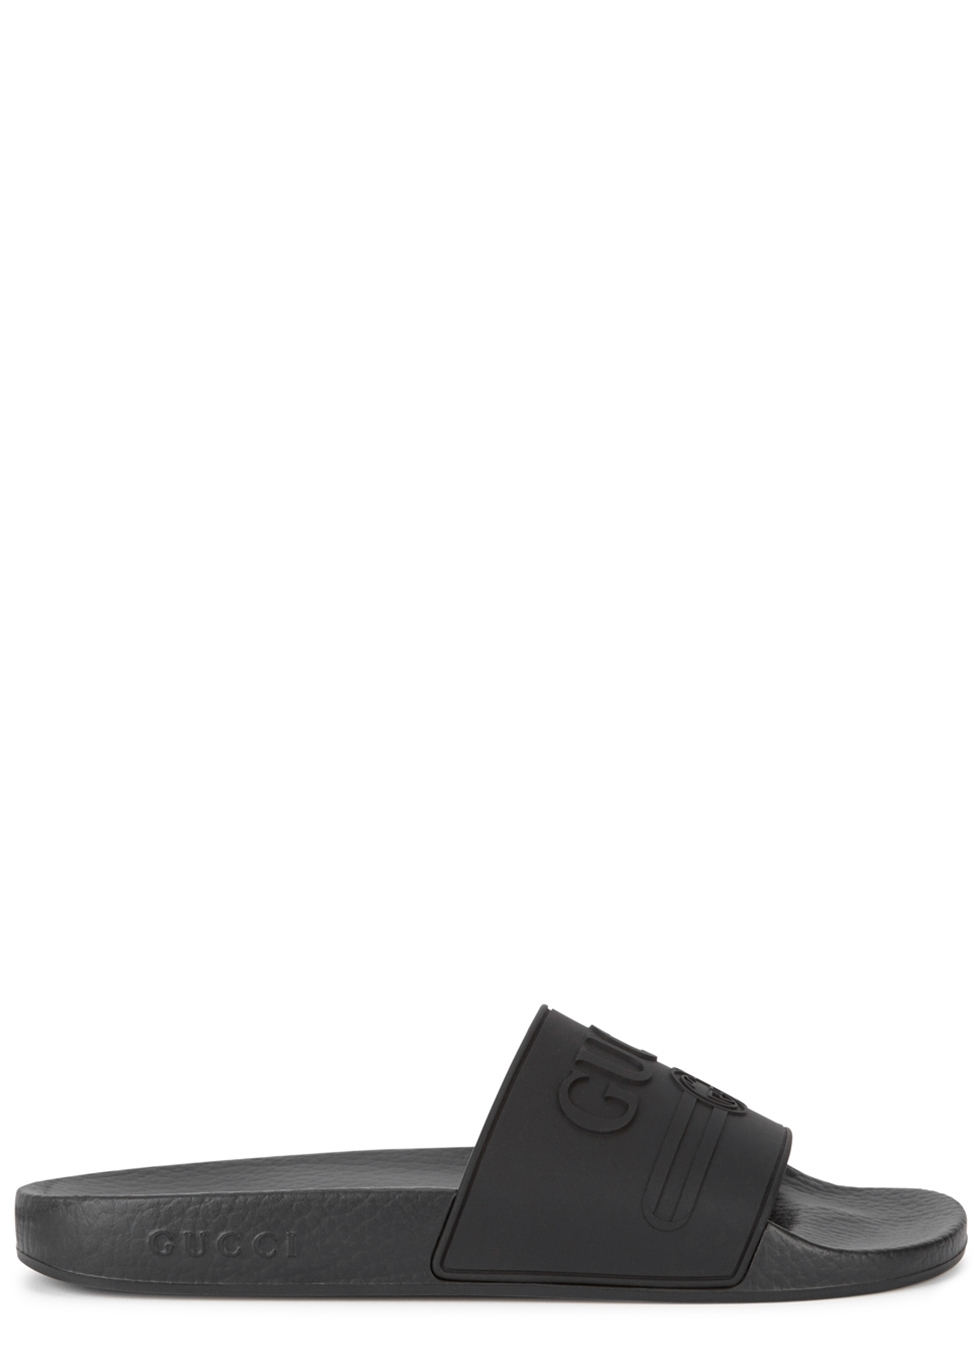 c367a81f7 Gucci Sandals - Womens - Harvey Nichols